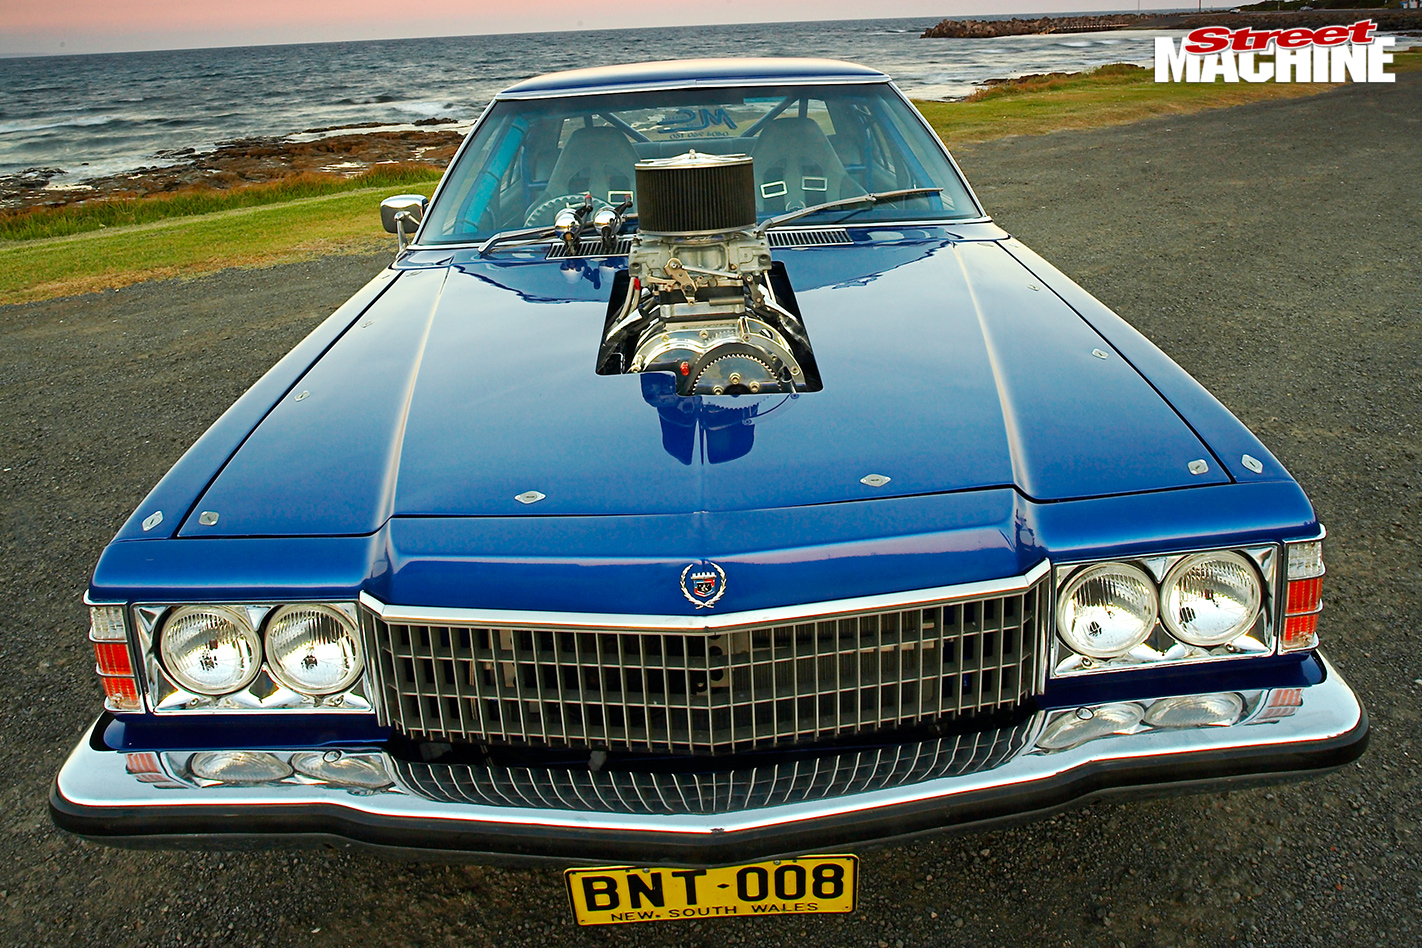 383-CUBE-SMALL-BLOCK-BLOWN-1975-HOLDEN-STATESMAN-front